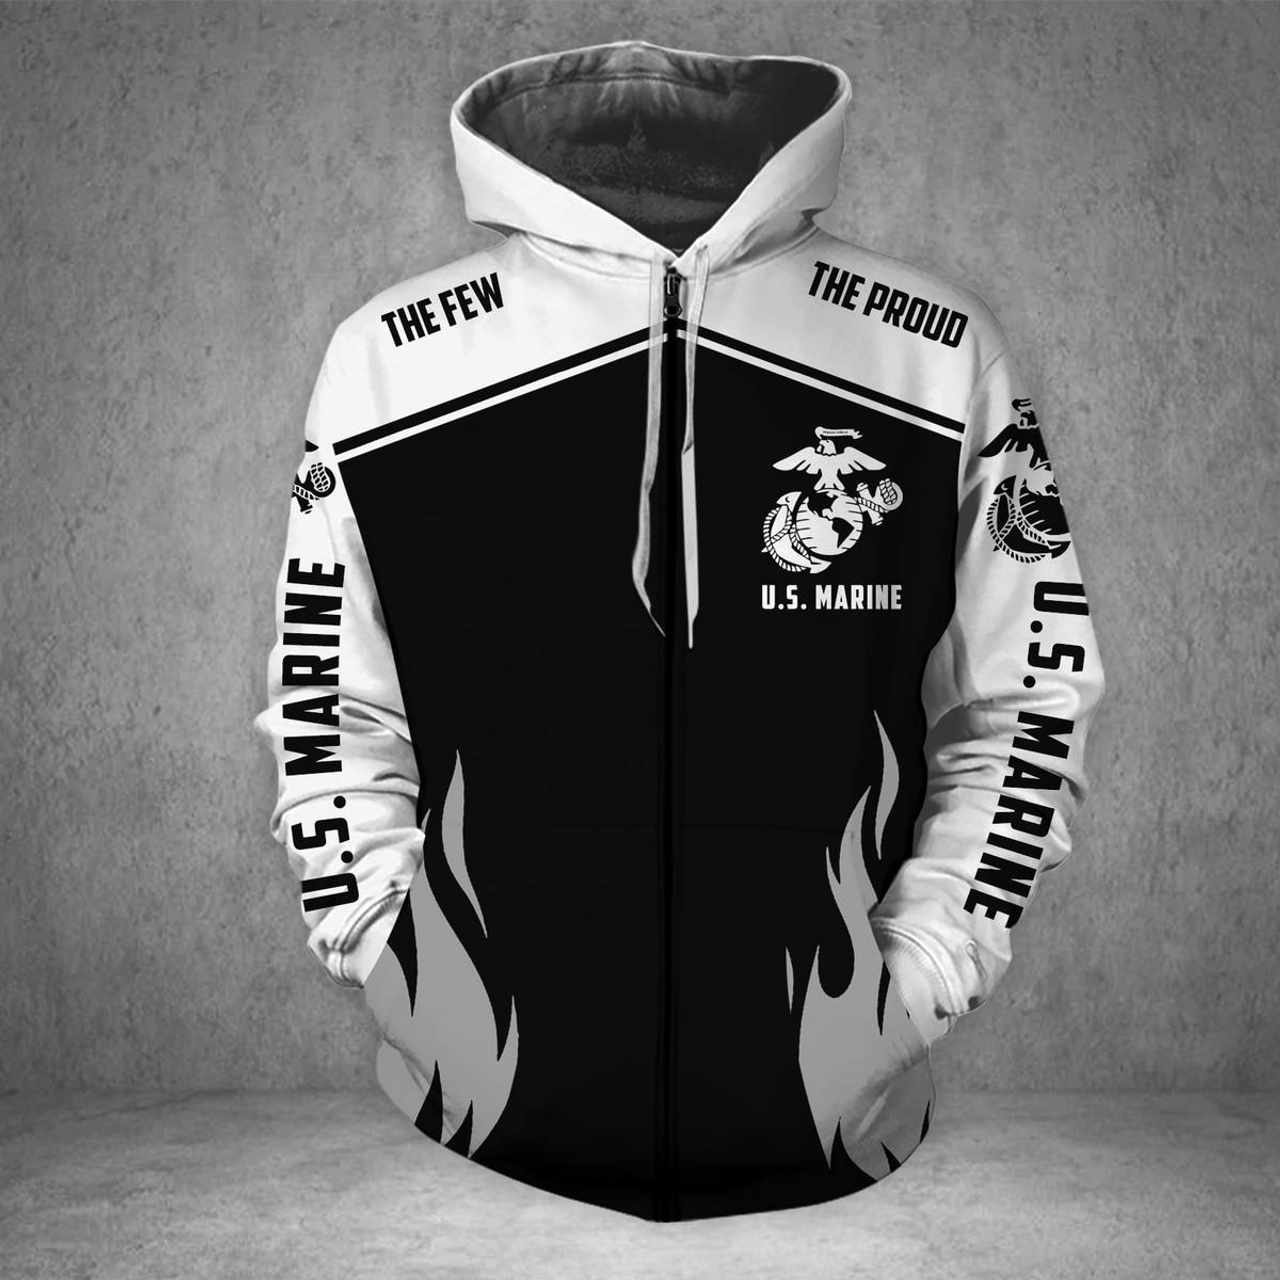 **(OFFICIAL-U.S.MARINE-VETERANS-ZIPPERED-HOODIES/PUNISHER-SKULL & OFFICIAL-CLASSIC-MARINES-GLOBE & ANCHOR-EMBLEM/NICE-3D-CUSTOM-DETAILED-GRAPHIC-PRINTED/DOUBLE-SIDED-ALL-OVER-PRINTED-SLEEVE-DESIGNED/WARM-PREMIUM-ZIPPERED-U.S.MARINES-HOODIES)**